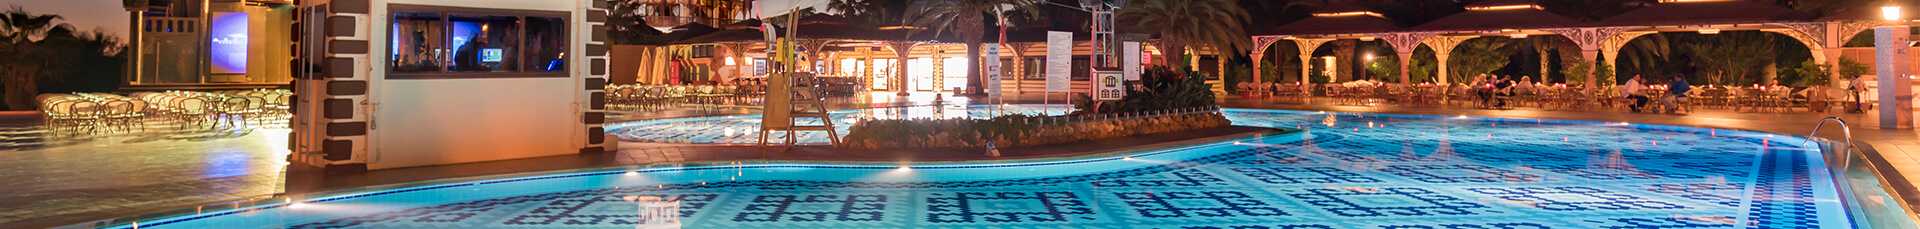 Ali Bey Park Manavgat - Pools